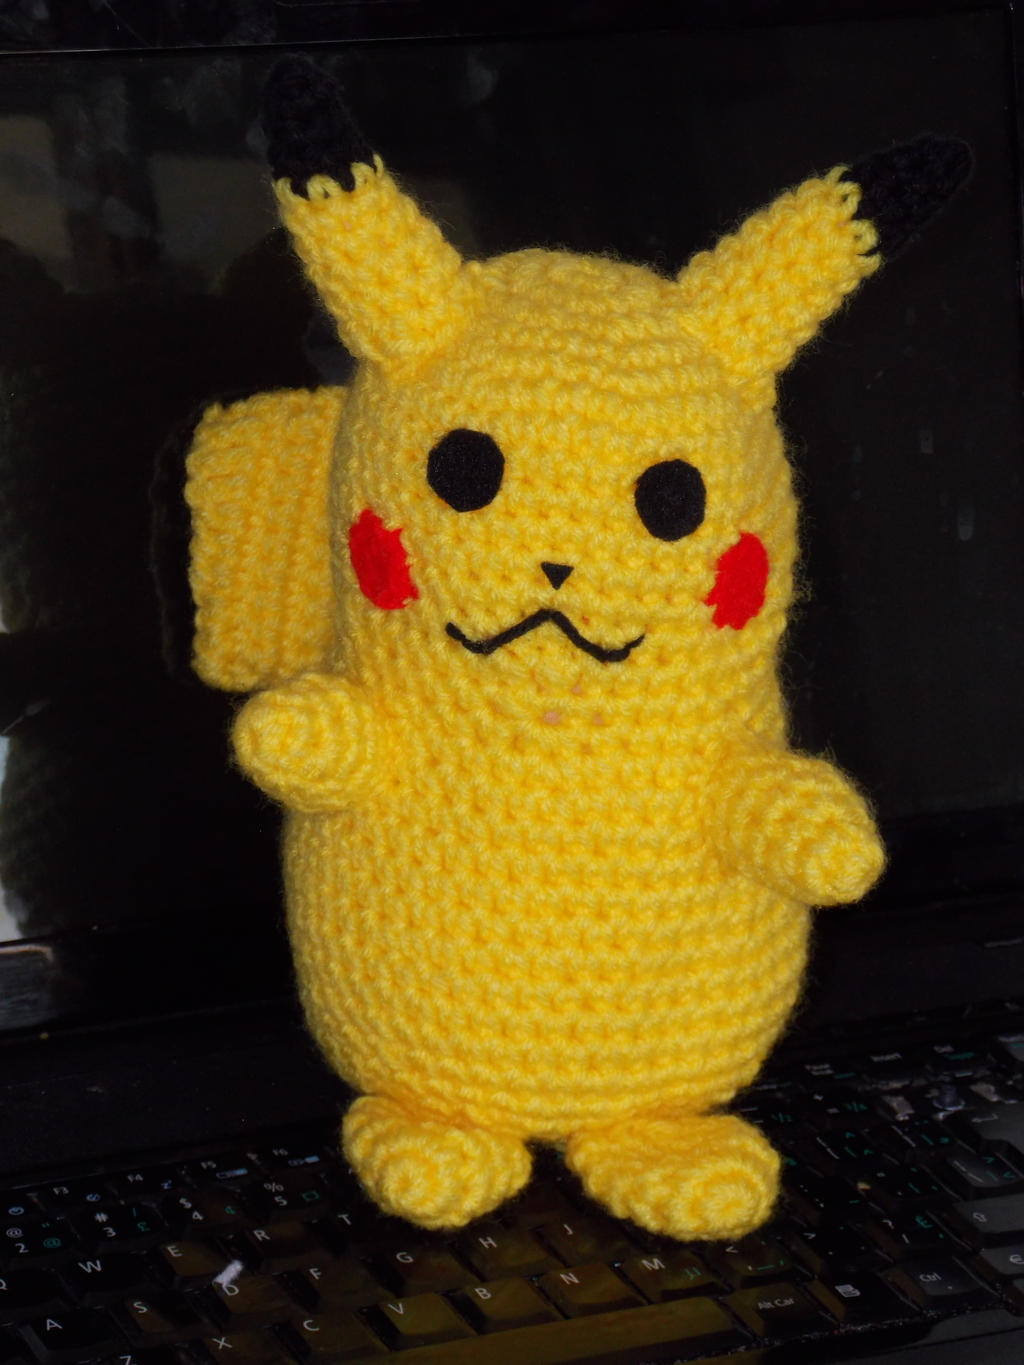 Schema Pikachu Amigurumi : Pikachu amigurumi from pokemon by GGFboutique on DeviantArt